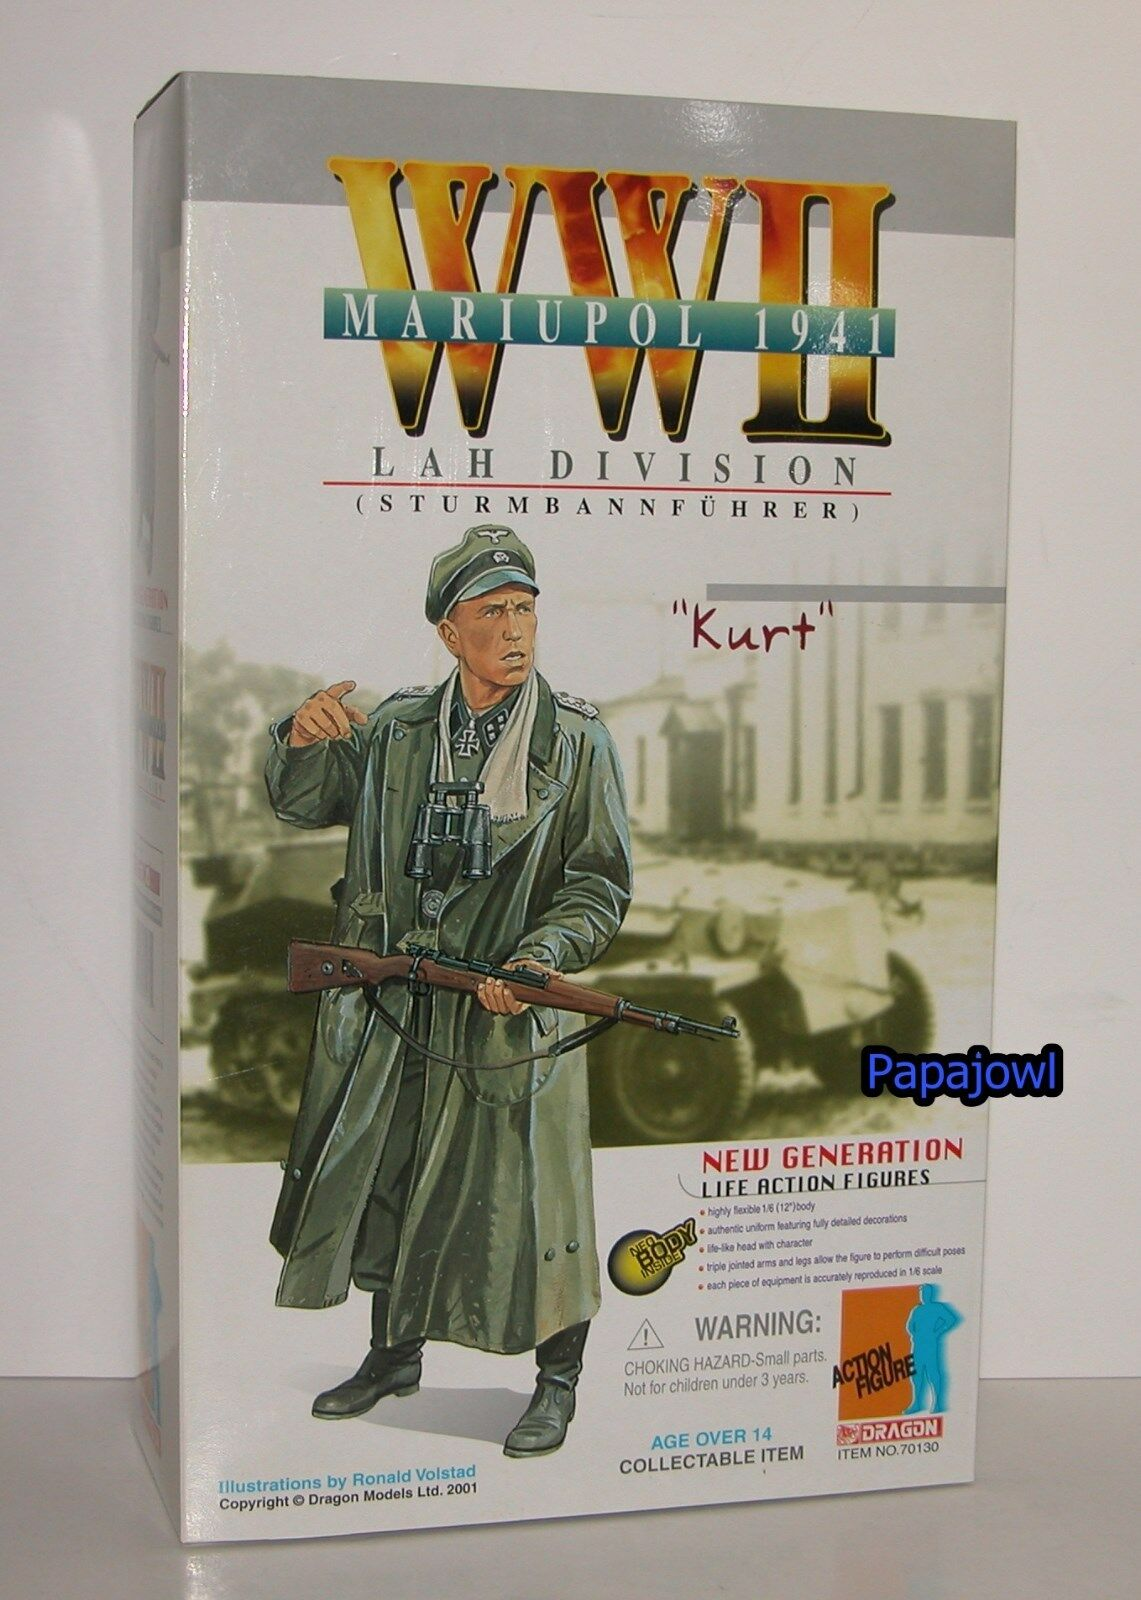 New Generation Dragon WWII Mariupol 1941 Lah Division Kurt 12  Action Figure